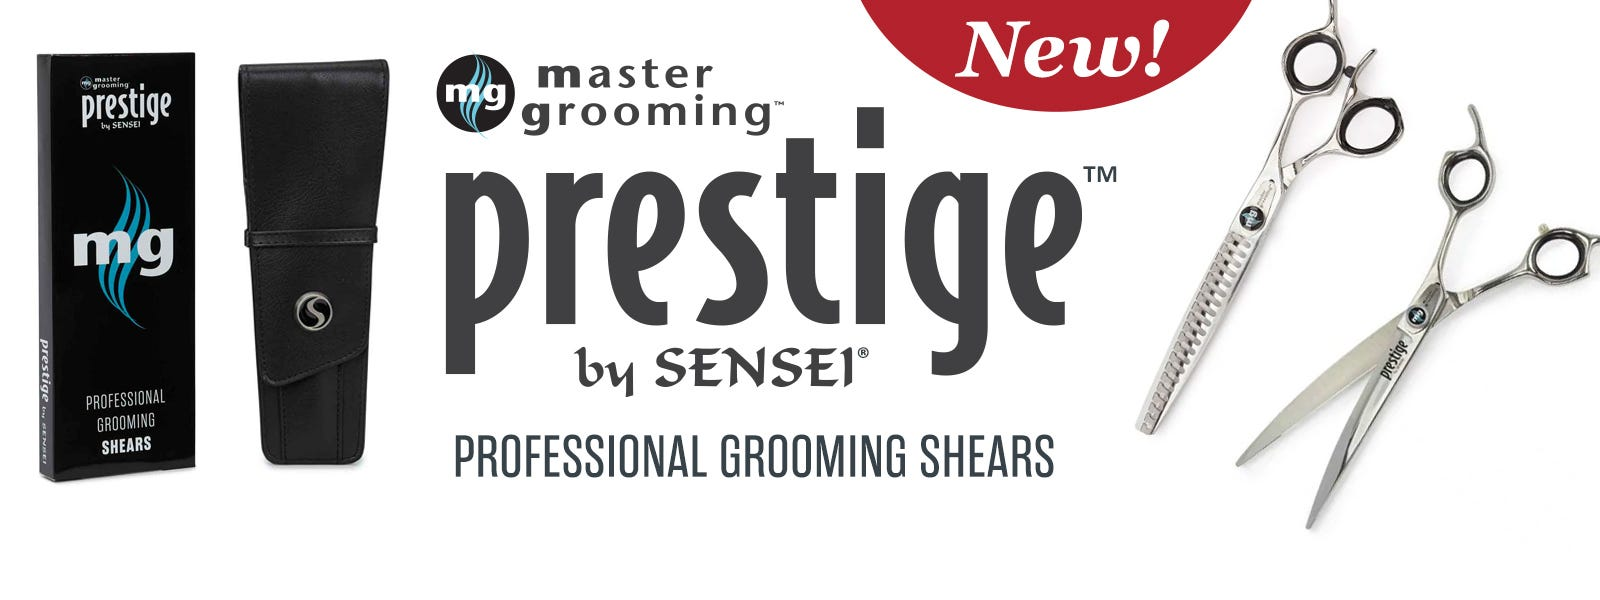 New Prestige Shears by Sensei